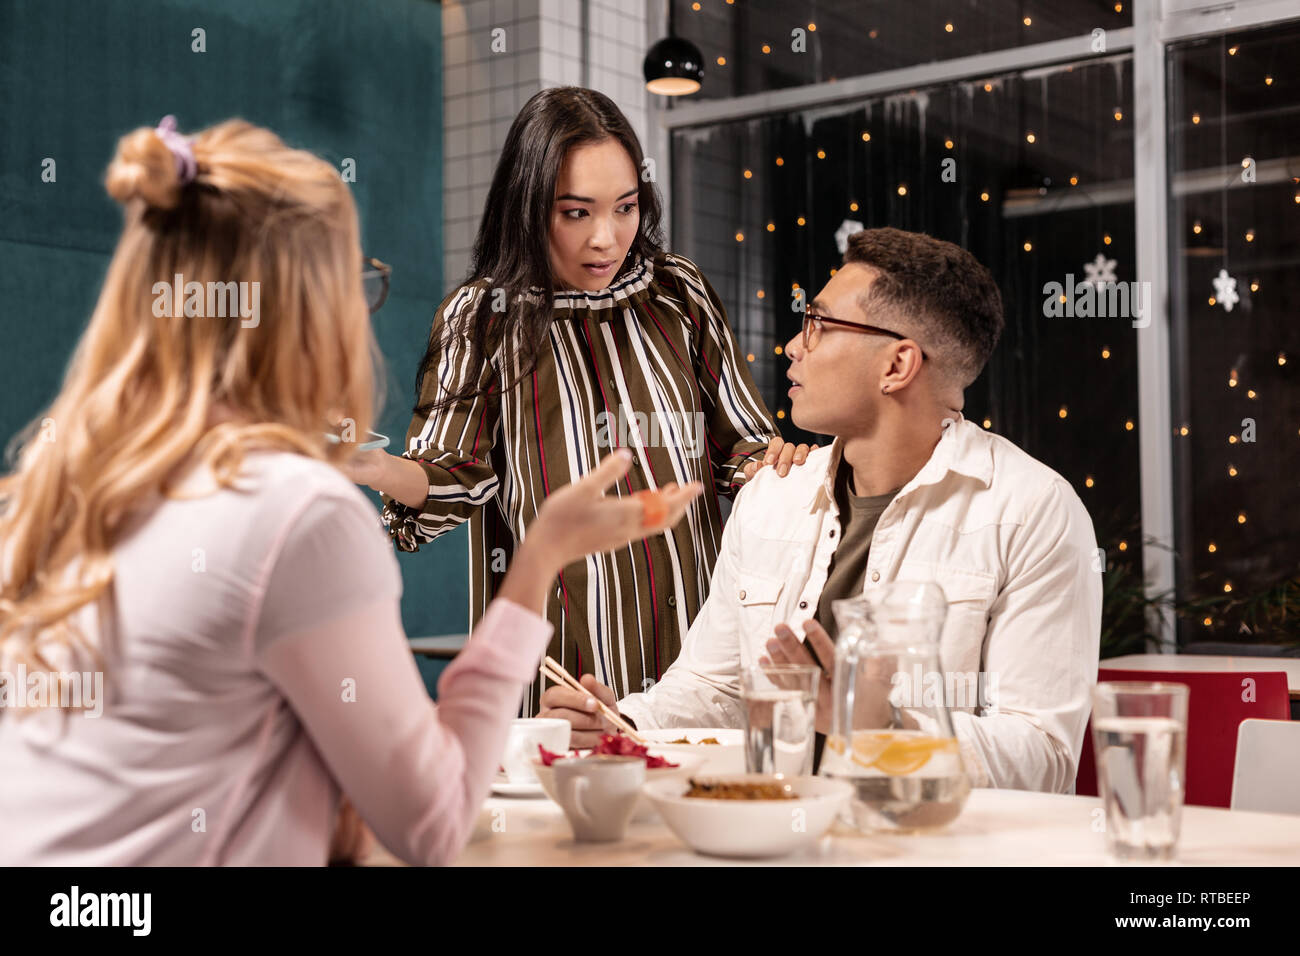 Girl feeling surprised and confused when seeing her boyfriend with another woman. - Stock Image